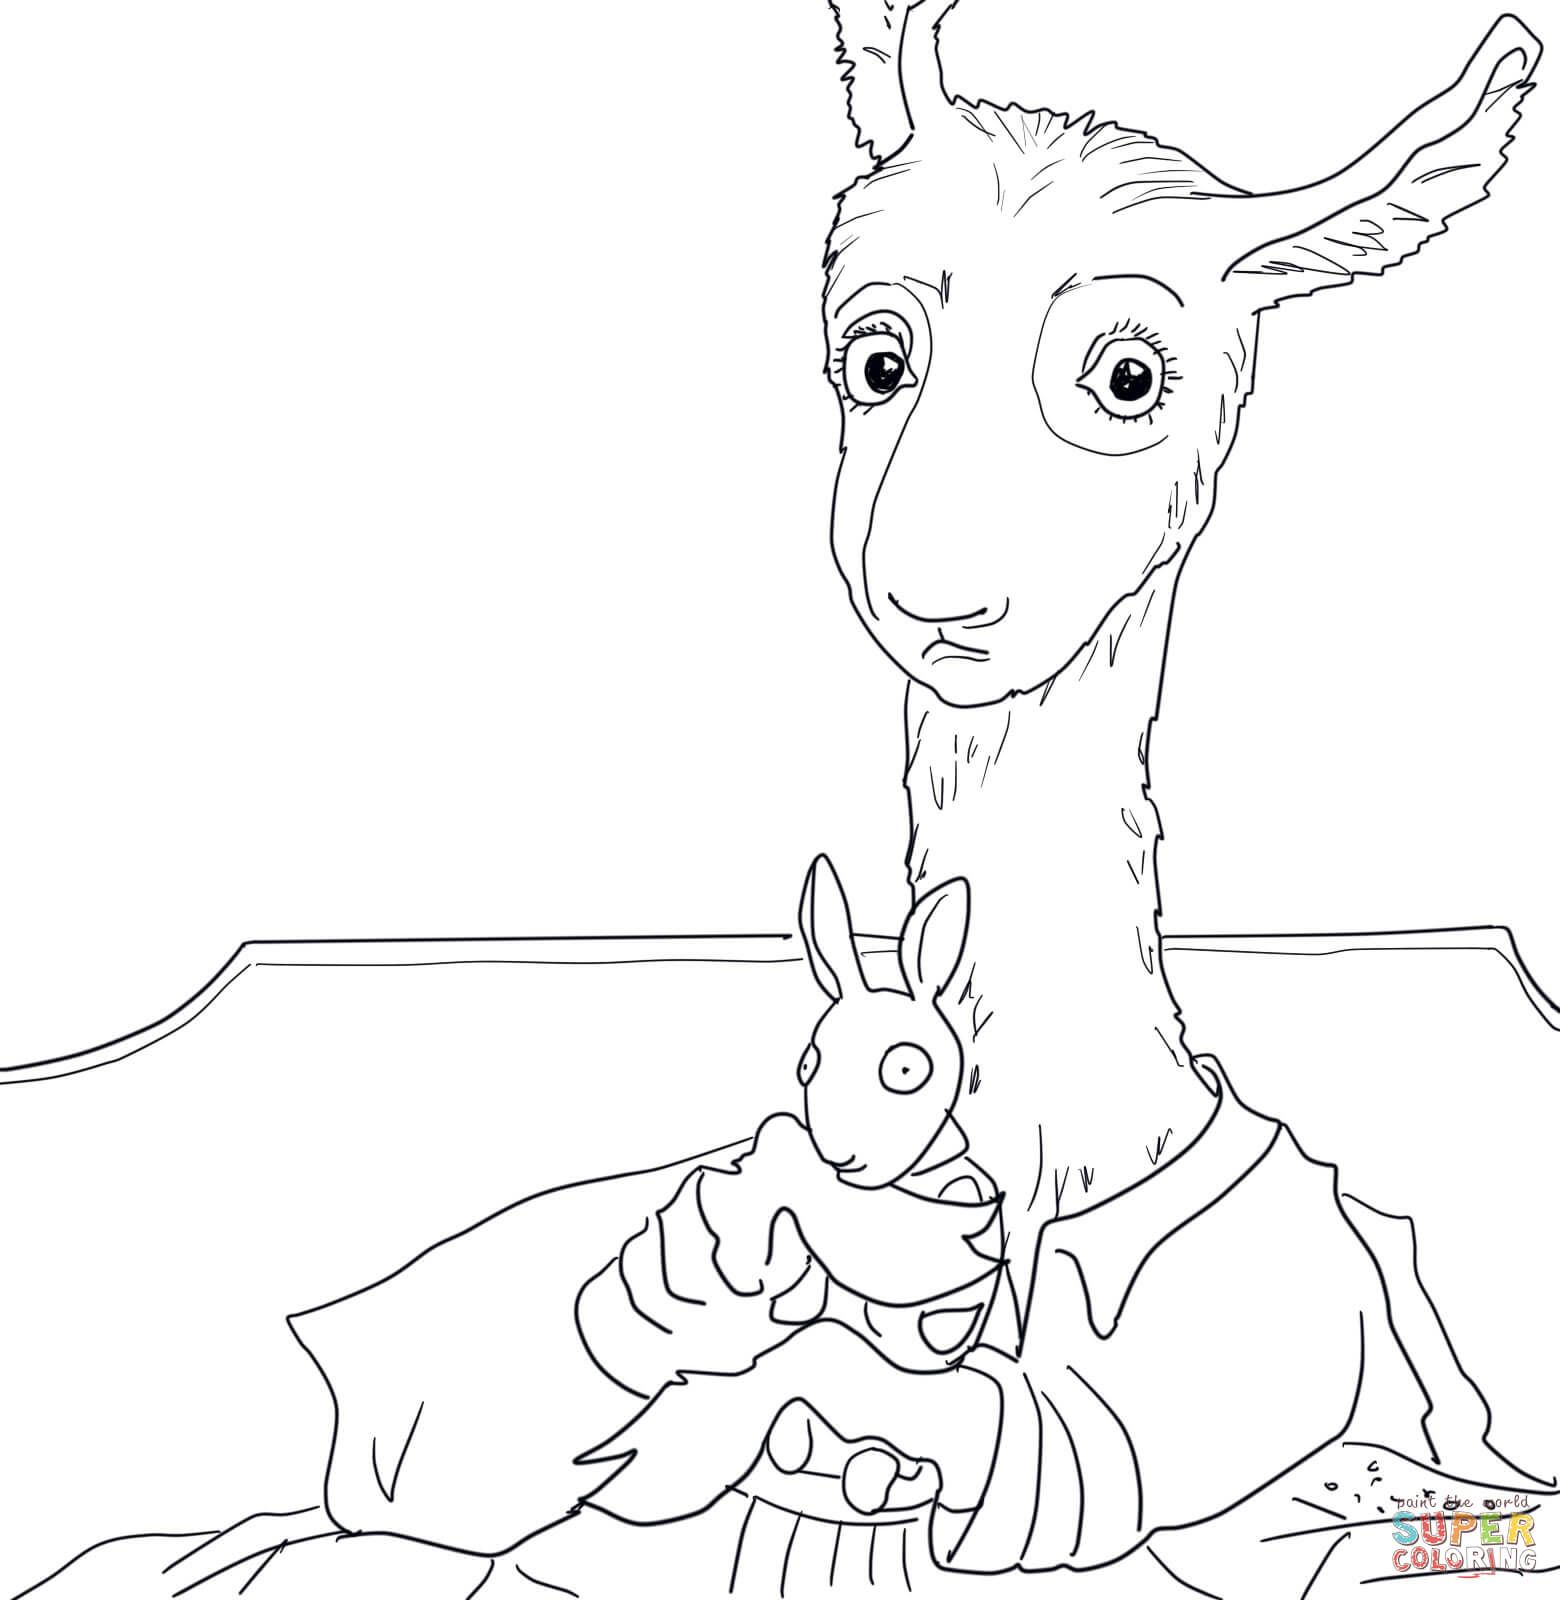 Llama Llama Red Pajama coloring page from Llama Llama category ...